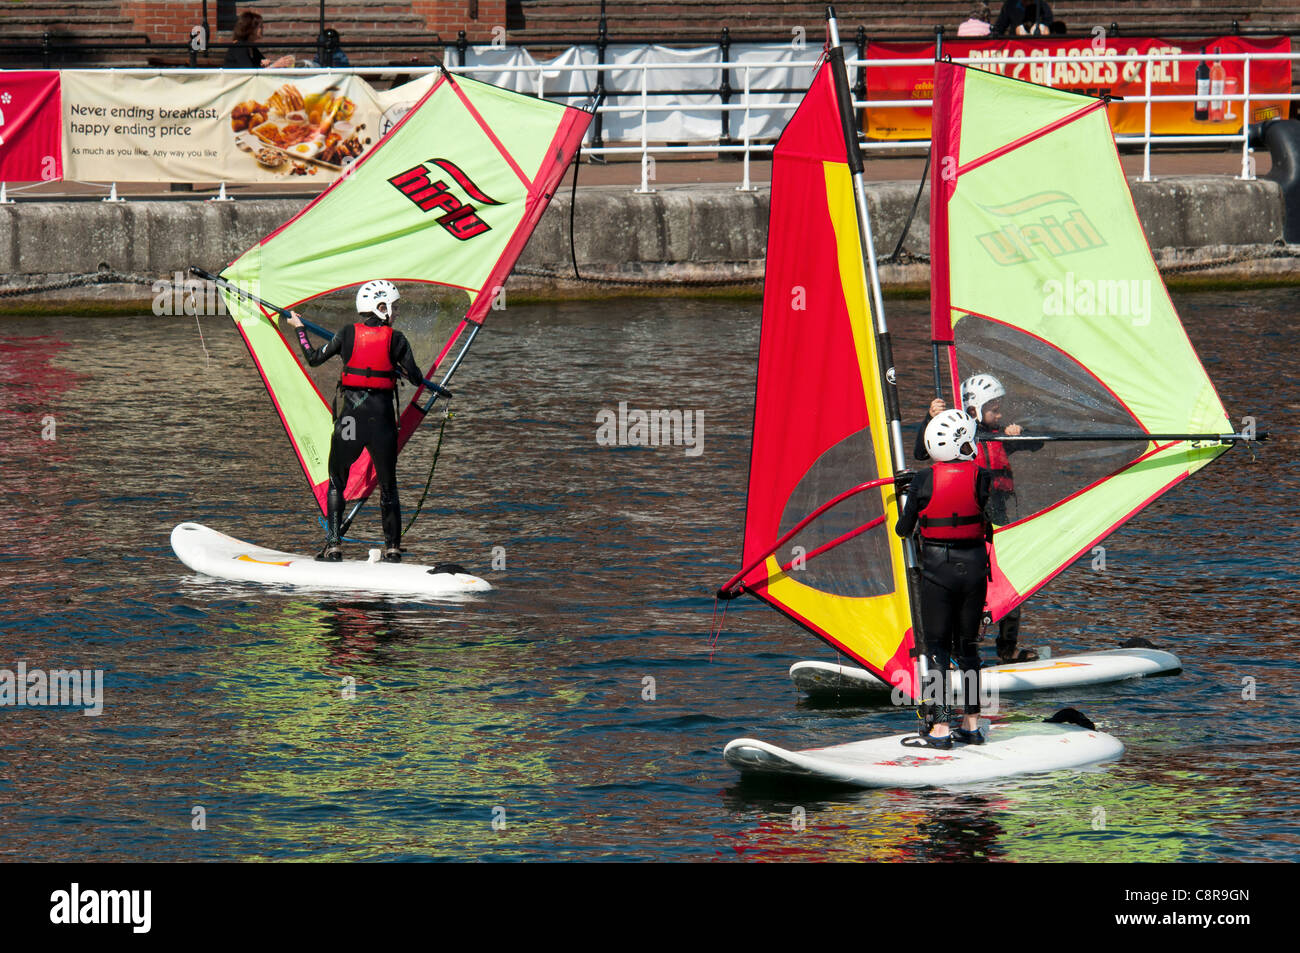 Children practicing windsurfing at the Watersports Centre, Salford Quays, Manchester, England, UK - Stock Image